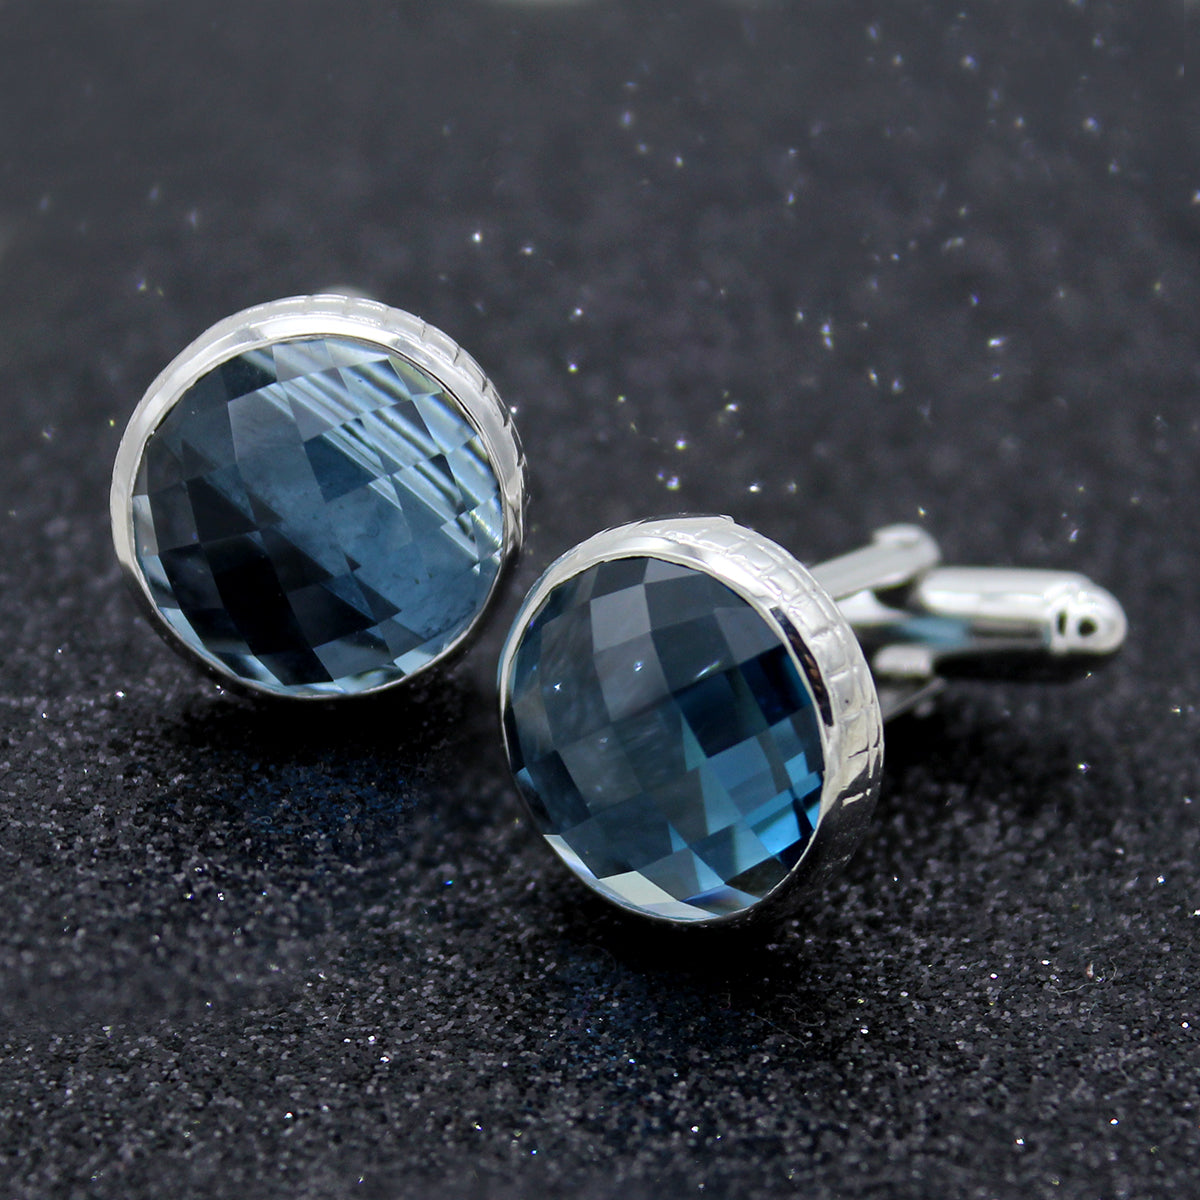 Natural Blue Topaz Cuff link-925 Sterling Silver Cufflink-Cushion Cut Blue Topaz Cufflink-Blue Topaz Cuff Button-Gift For Him-Men/'s Jewelry